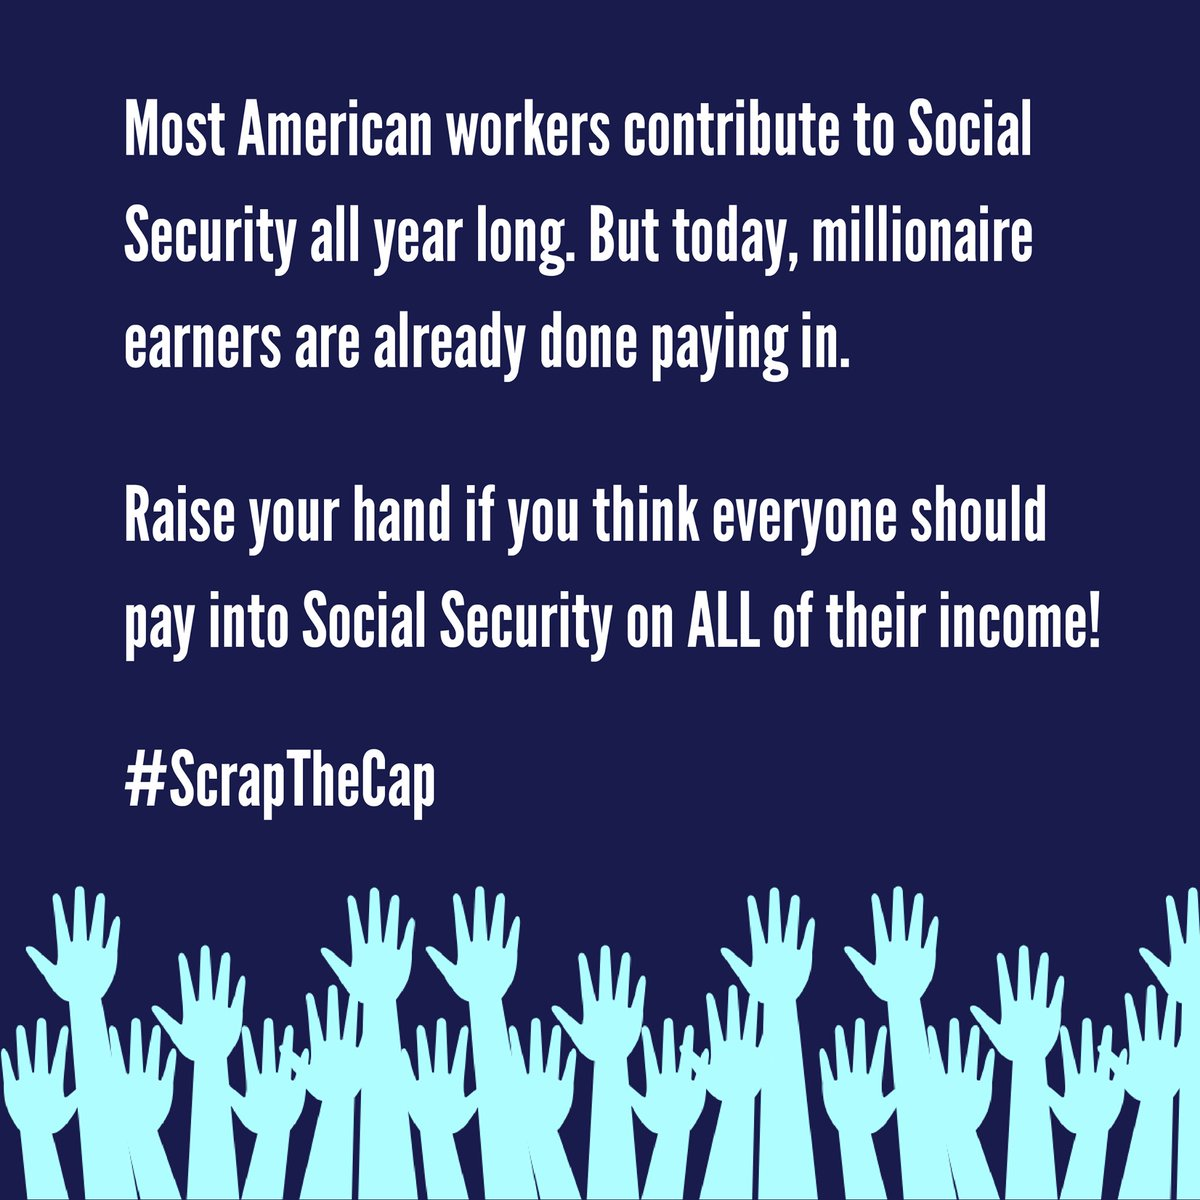 """Let's say it again: """"It is time to #ScrapTheCap so the ultra-rich contribute at the same rate as everyone else and we can expand—not cut—Social Security benefits.""""  shared via @BernieSanders  at  ."""